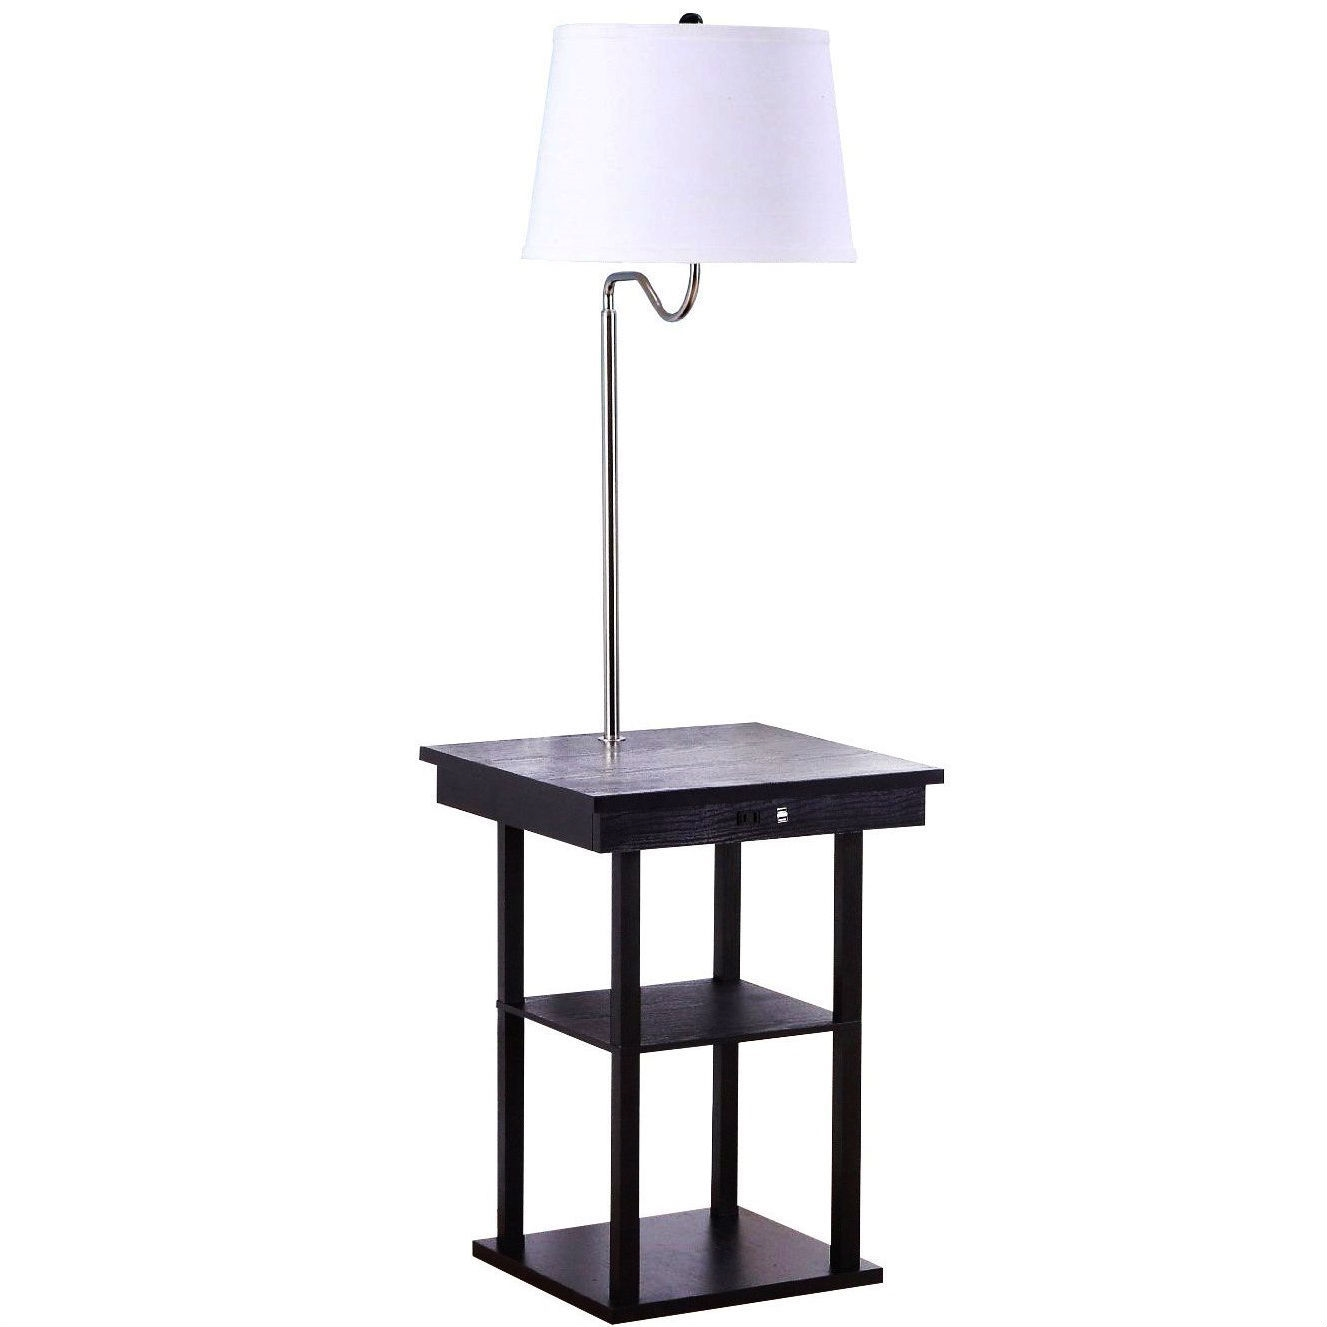 2-in1 Modern Side Table Floor Lamp with White Shade and ...